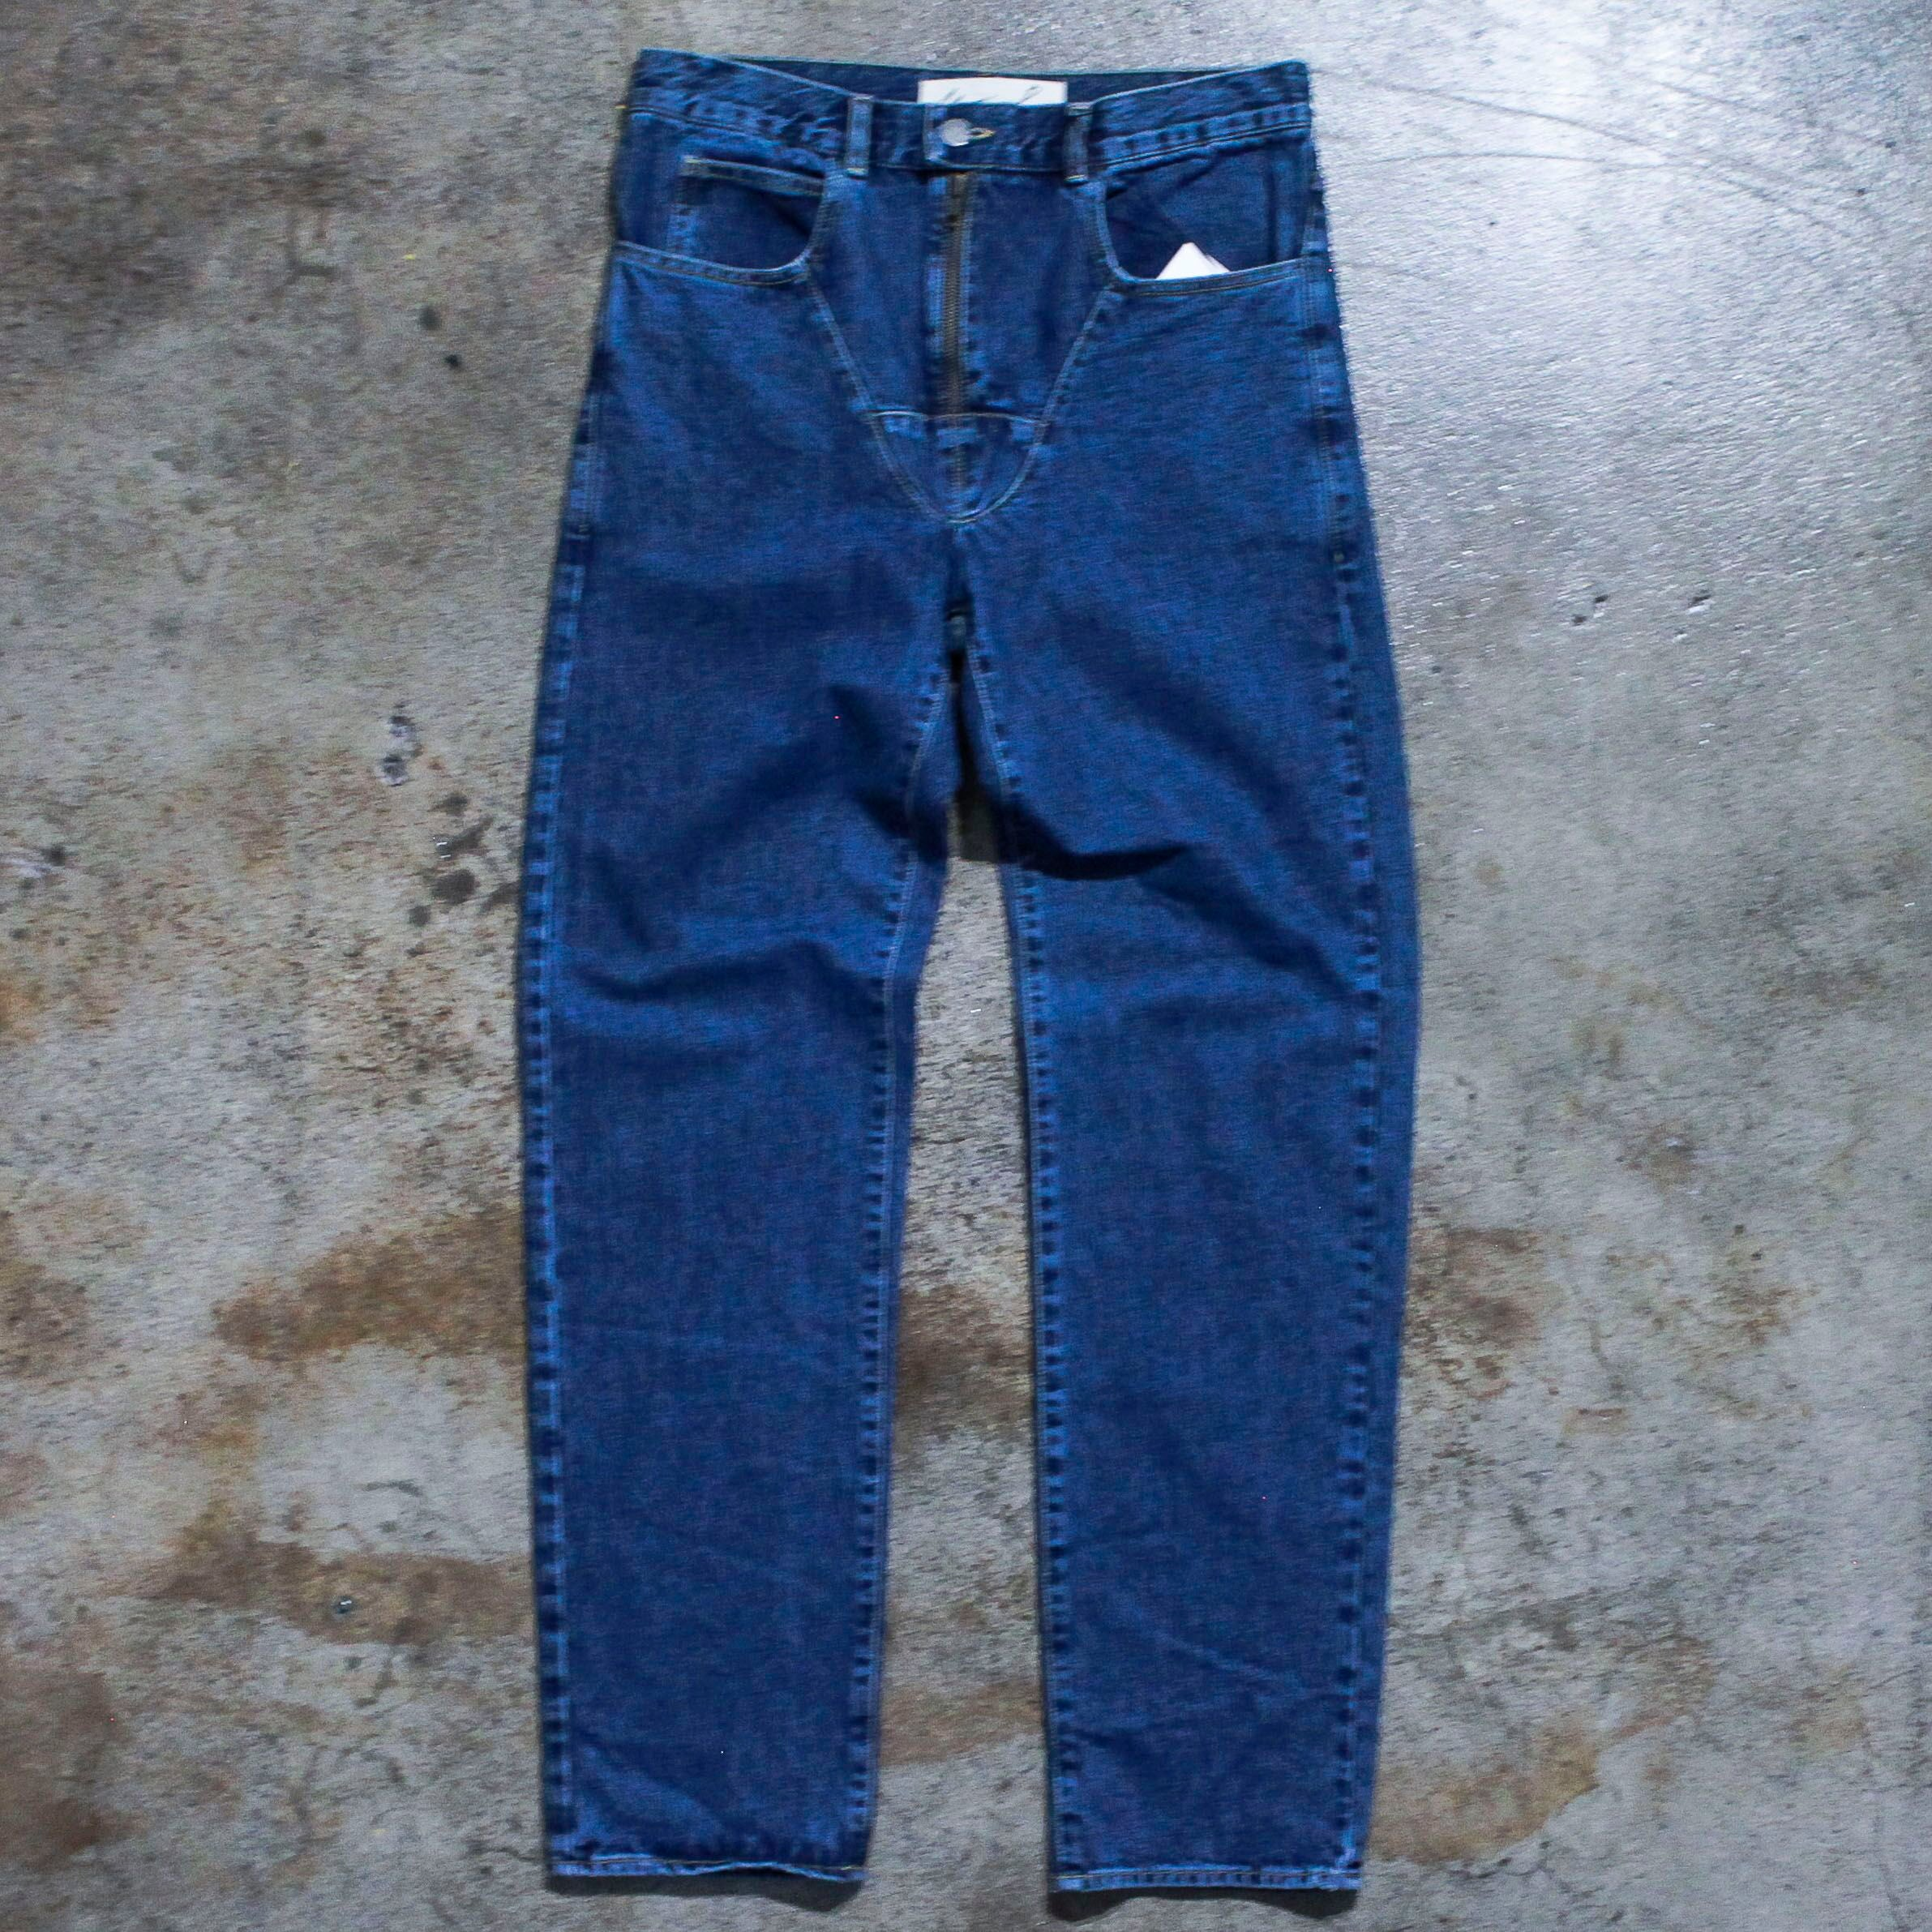 Martine Rose Denim Jeans